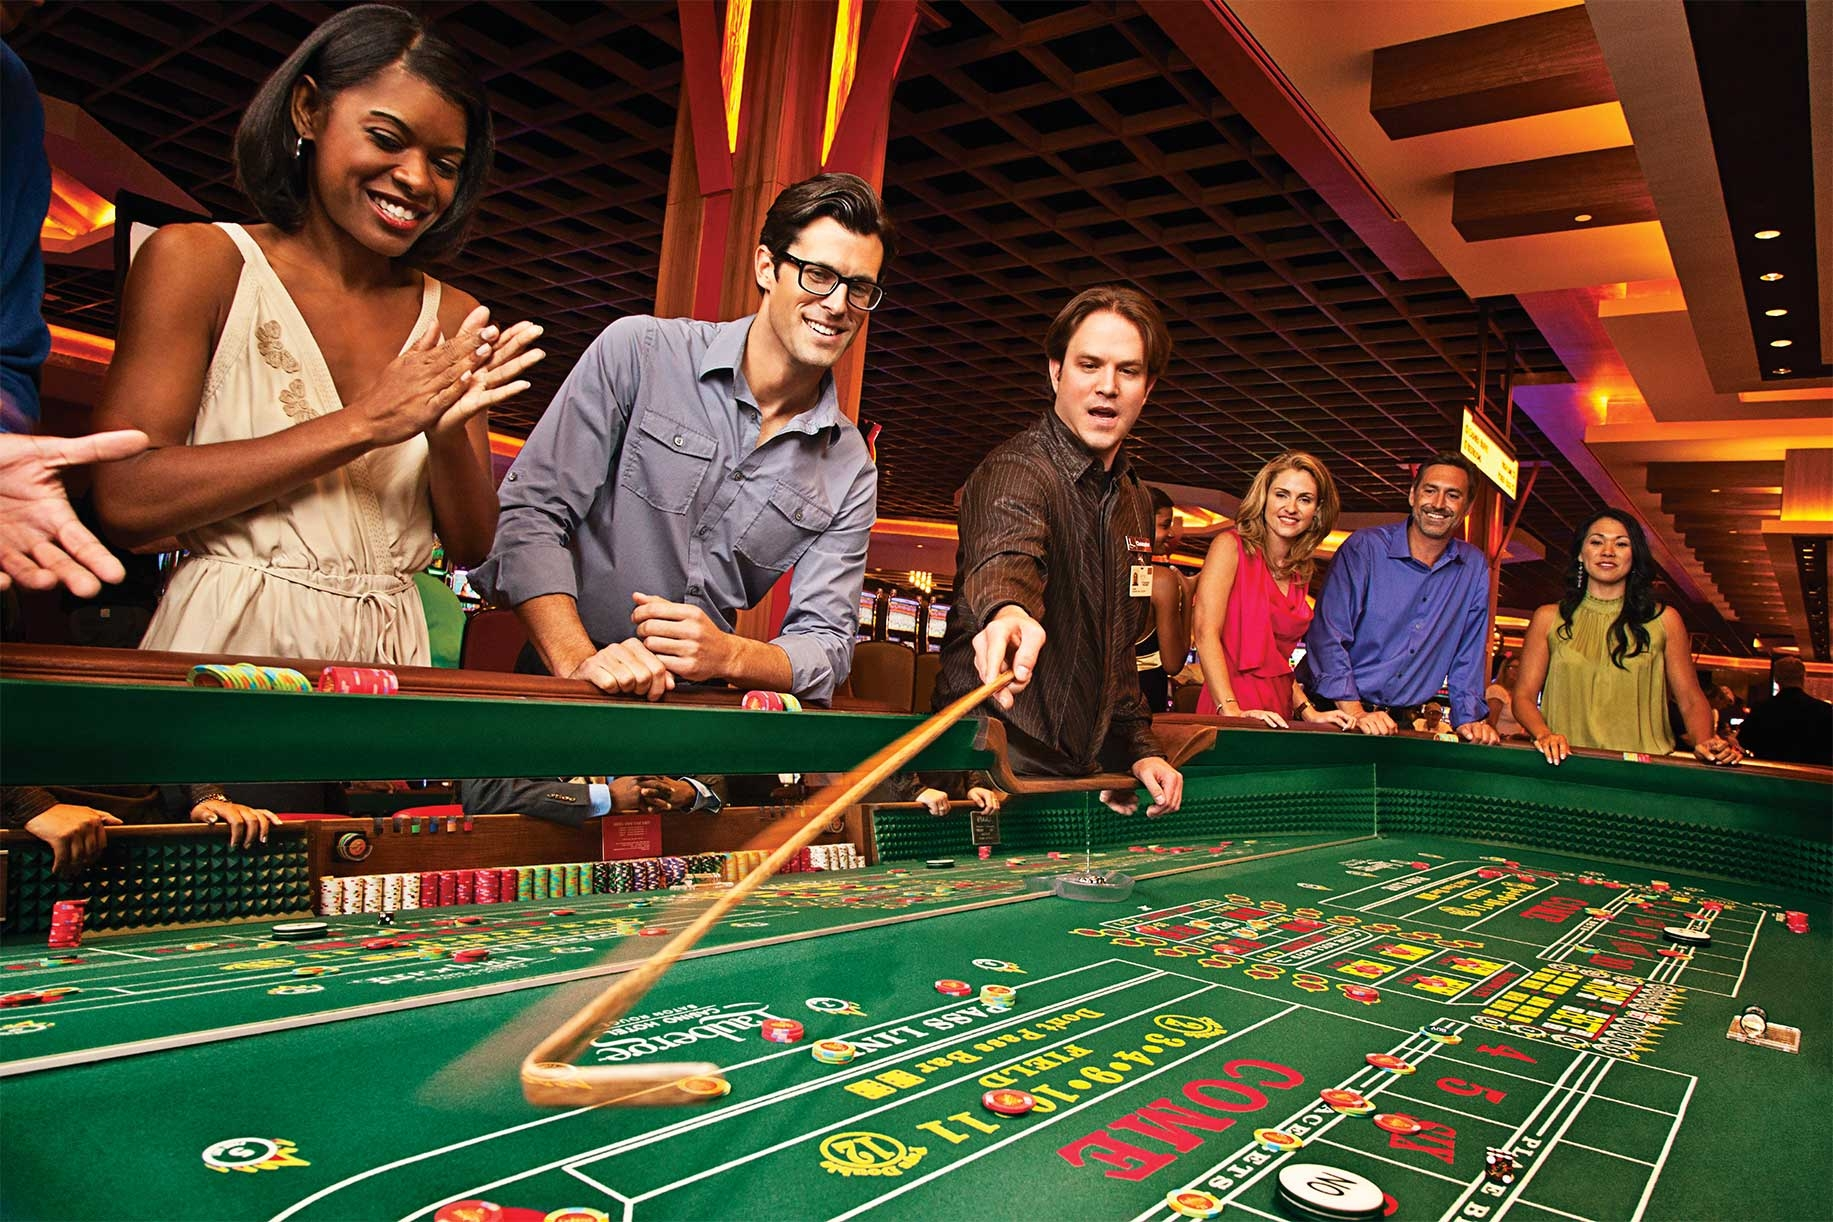 New york casino online game